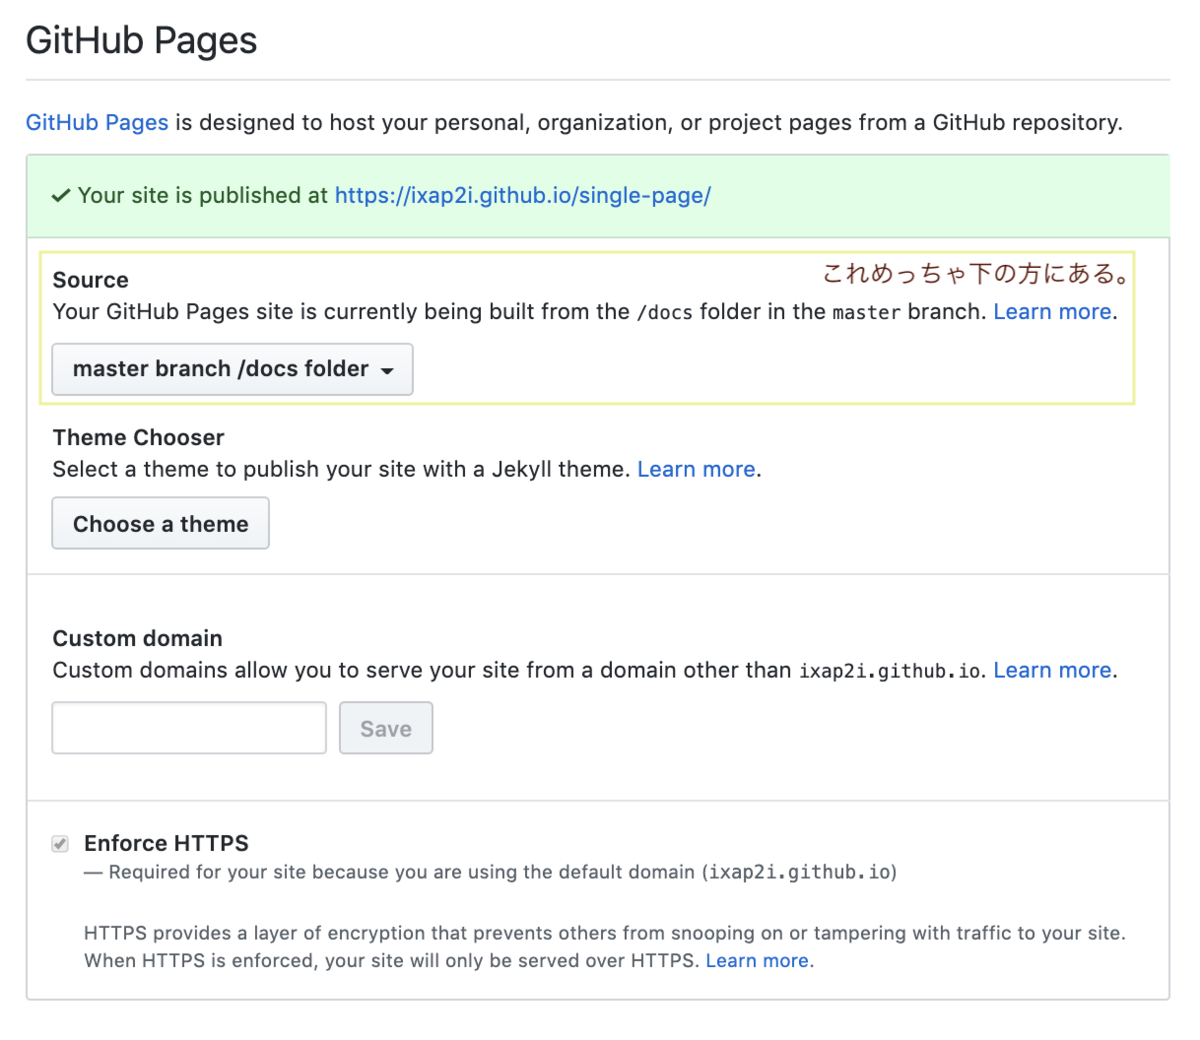 githubpages-deploy-settings